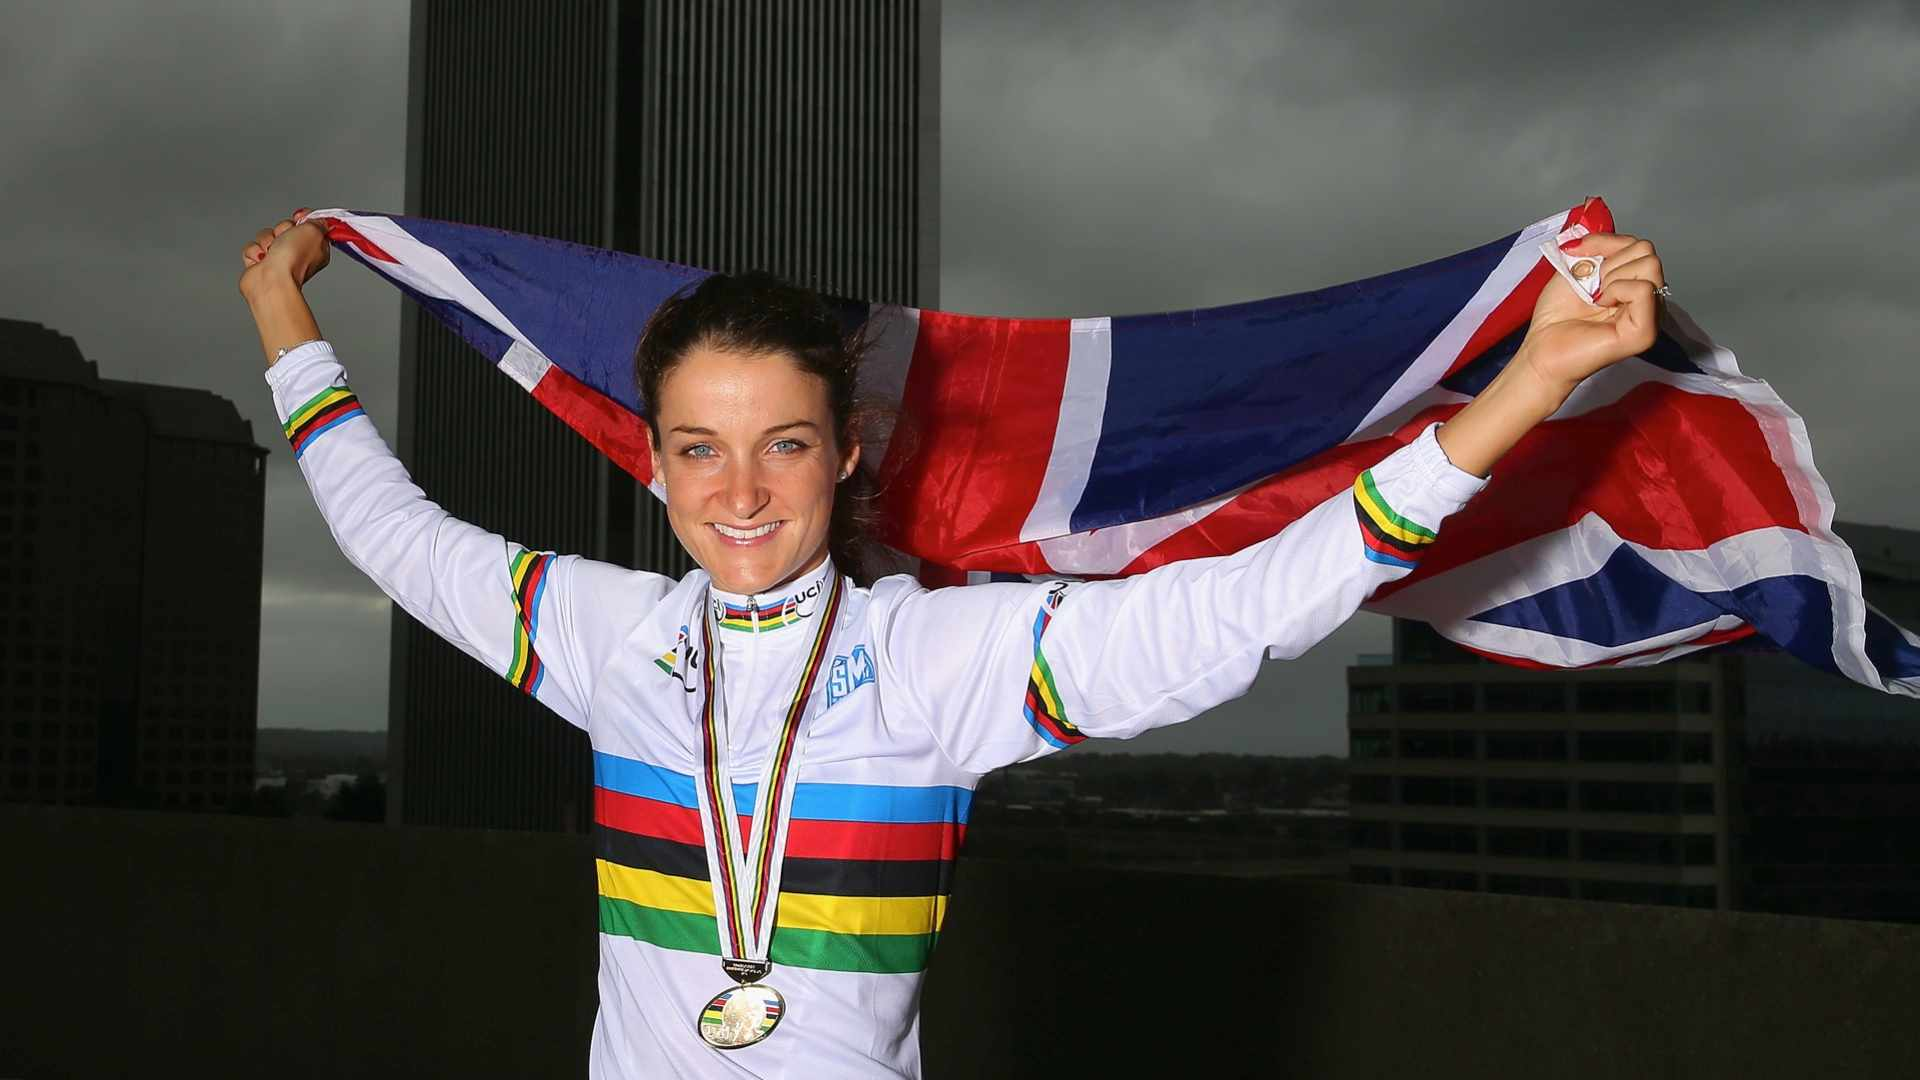 Lizzie Armitstead flew the flag in Richmond, Virginia in the best possible way